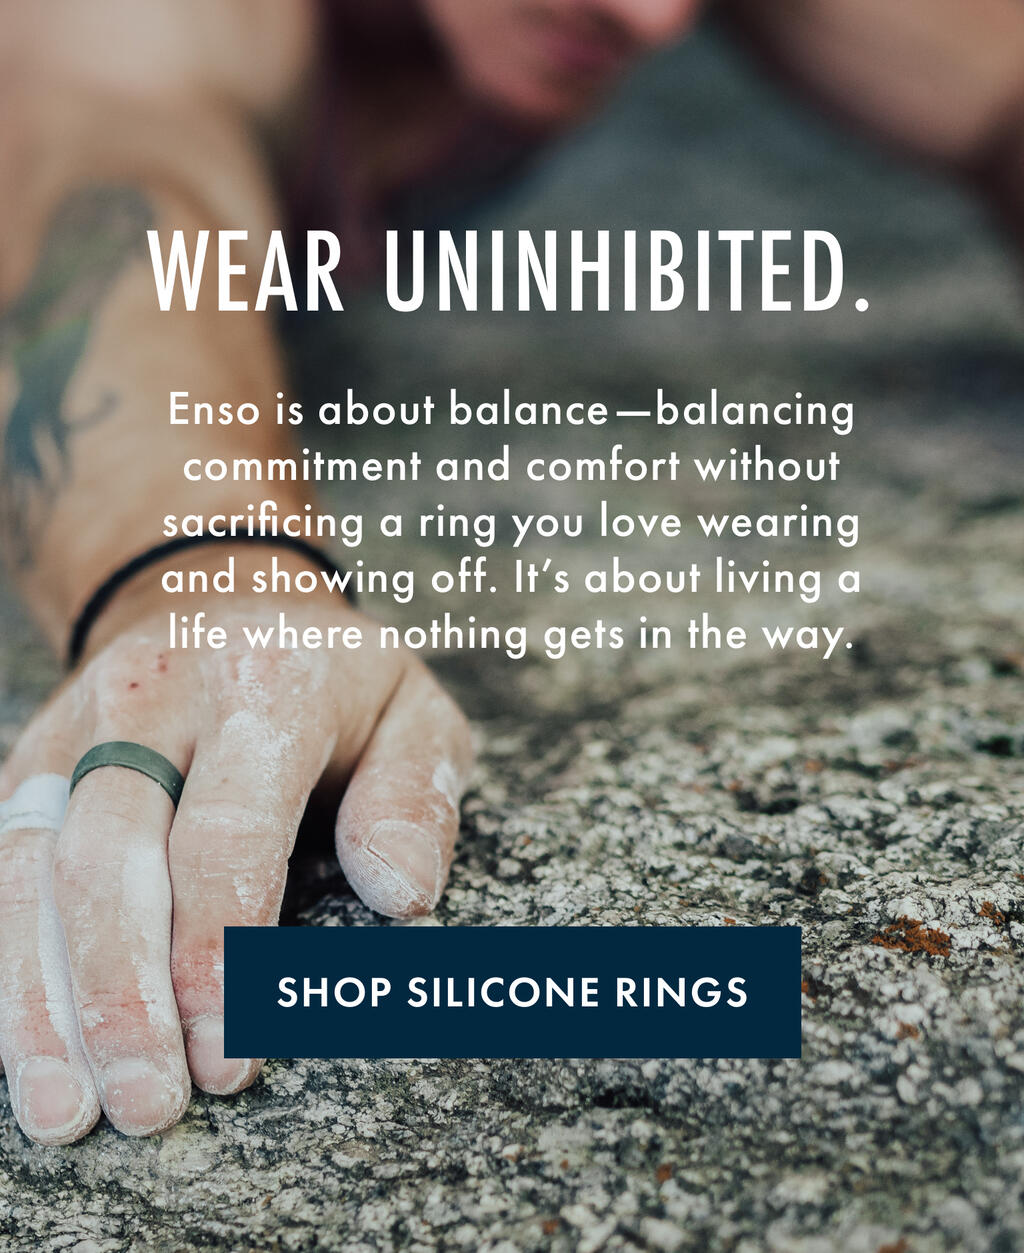 Enso is about balance—balancing commitment and comfort without sacrificing a ring you love wearing and showing off. It's about living a life where nothing gets in the way.